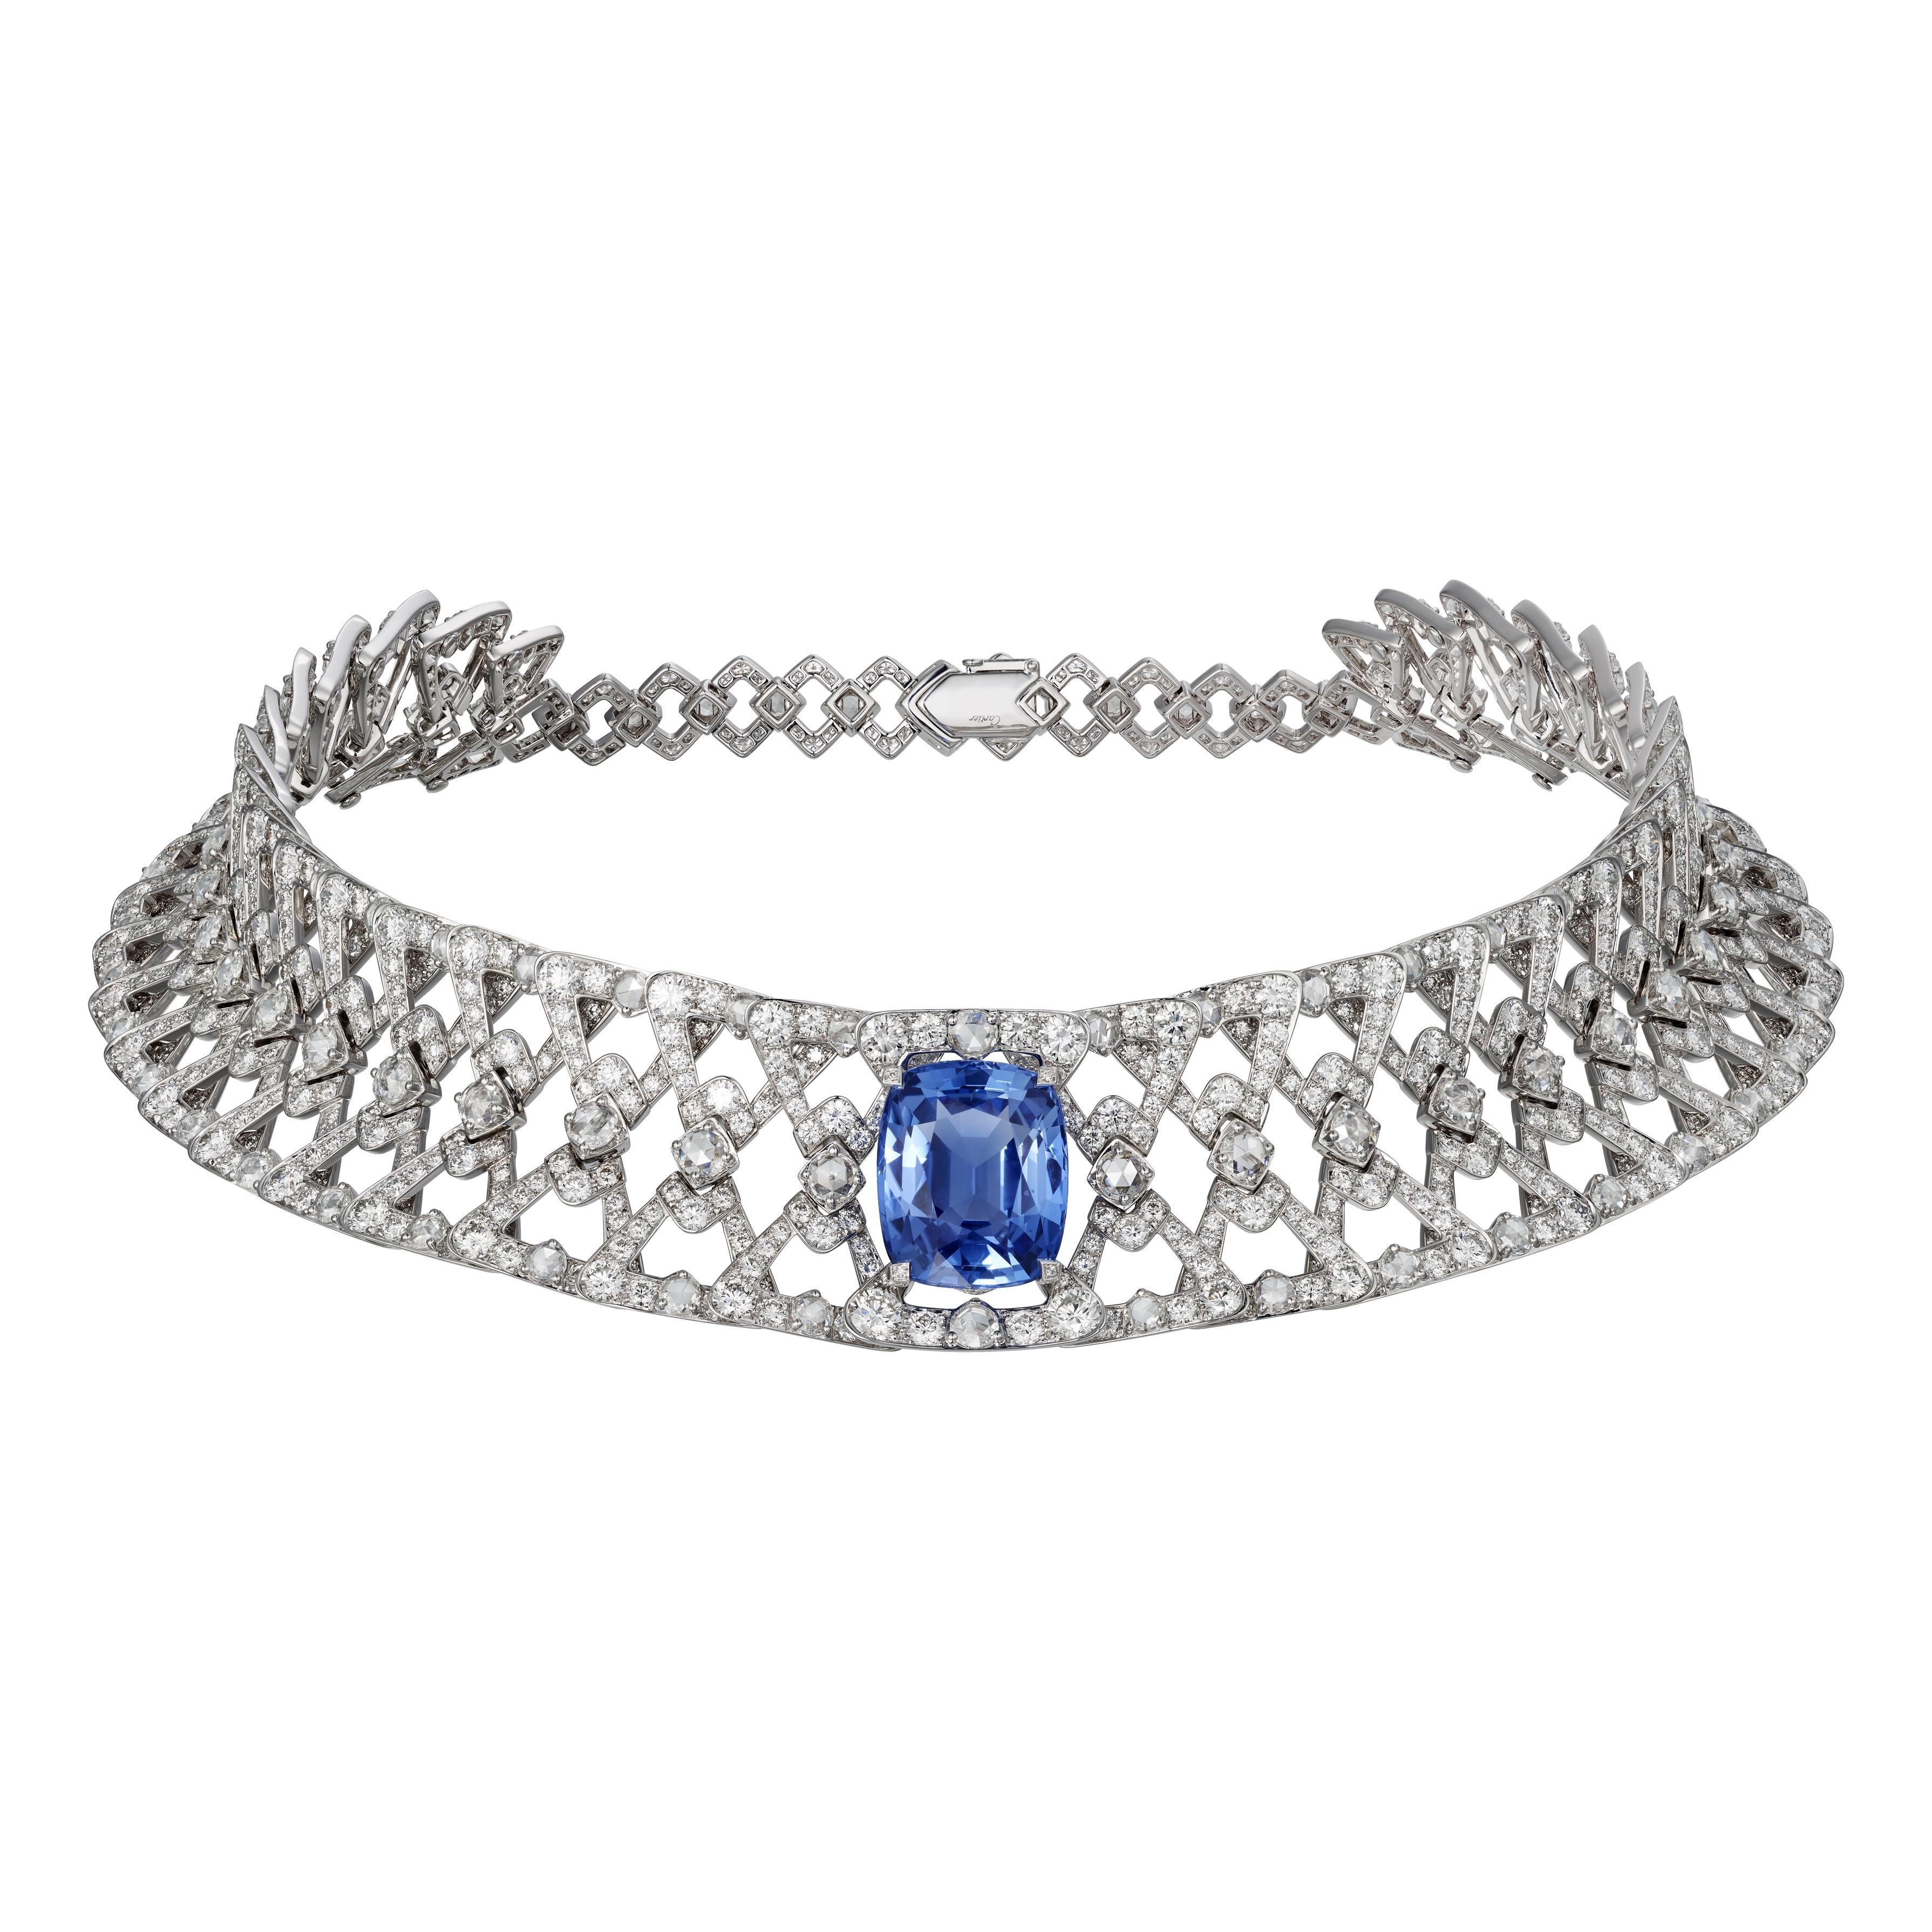 sotheby jewellery lr en s jewels auctions sapphire ecatalogue lot cartier magnificent